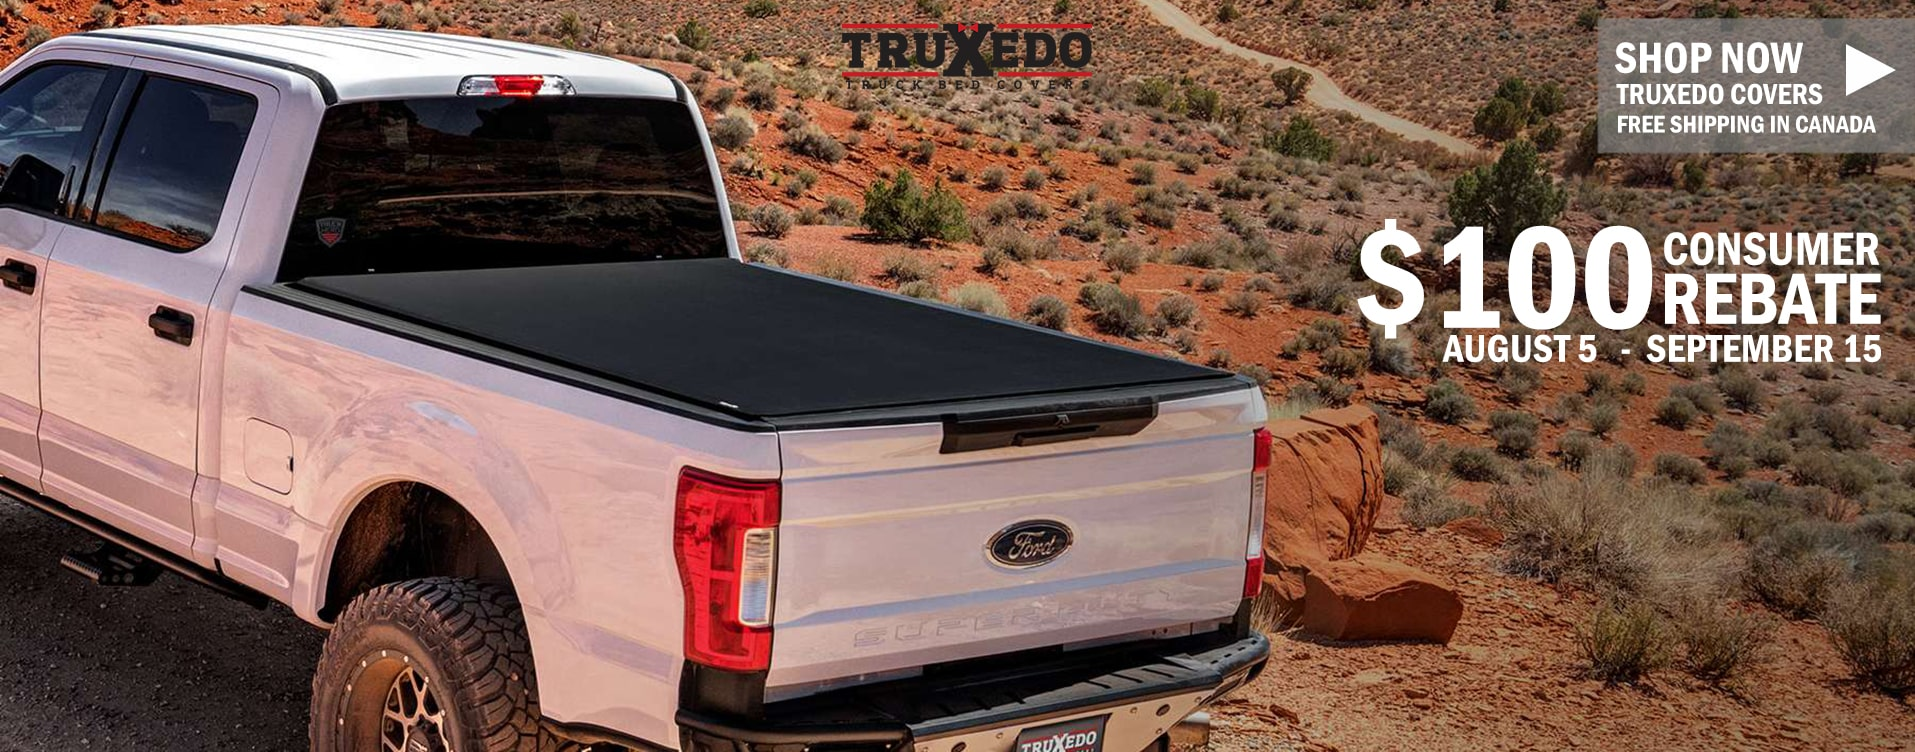 Canadian Hitch Store | Auto Roof Racks | Towing & Trailer Parts